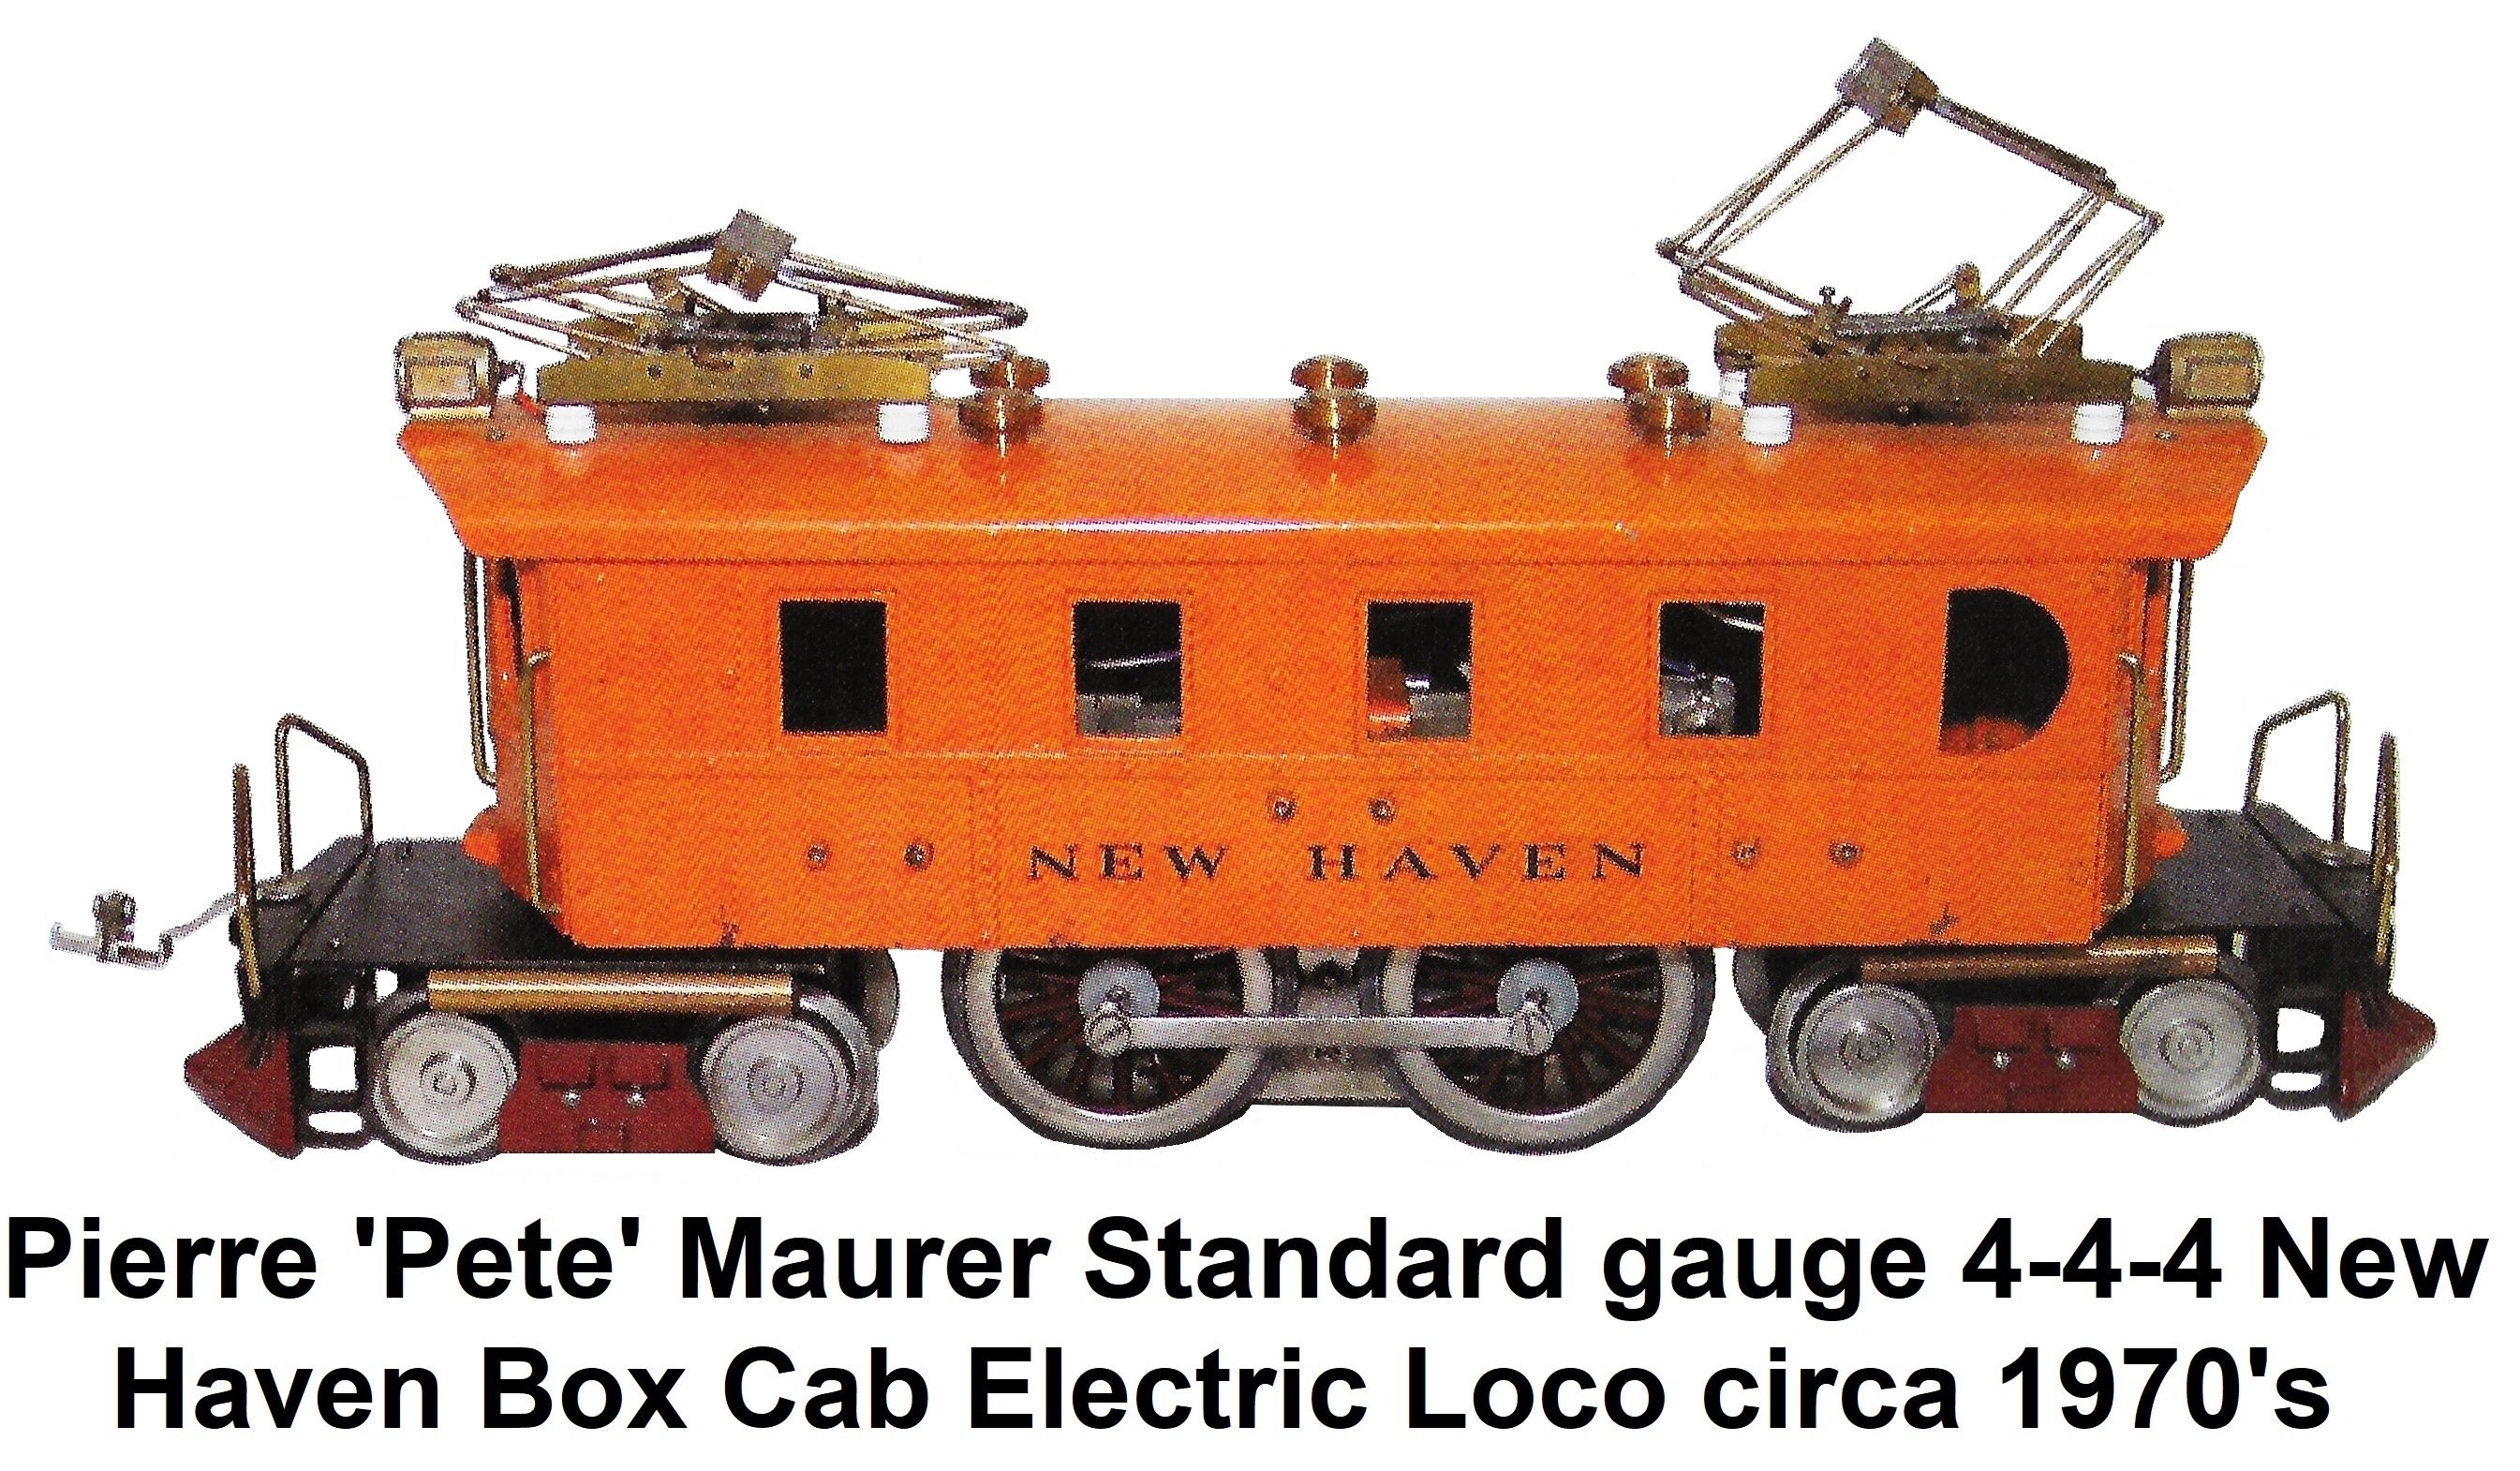 Maurer Standard gauge 4-4-4 New Haven Box Cab Electric circa 1970's